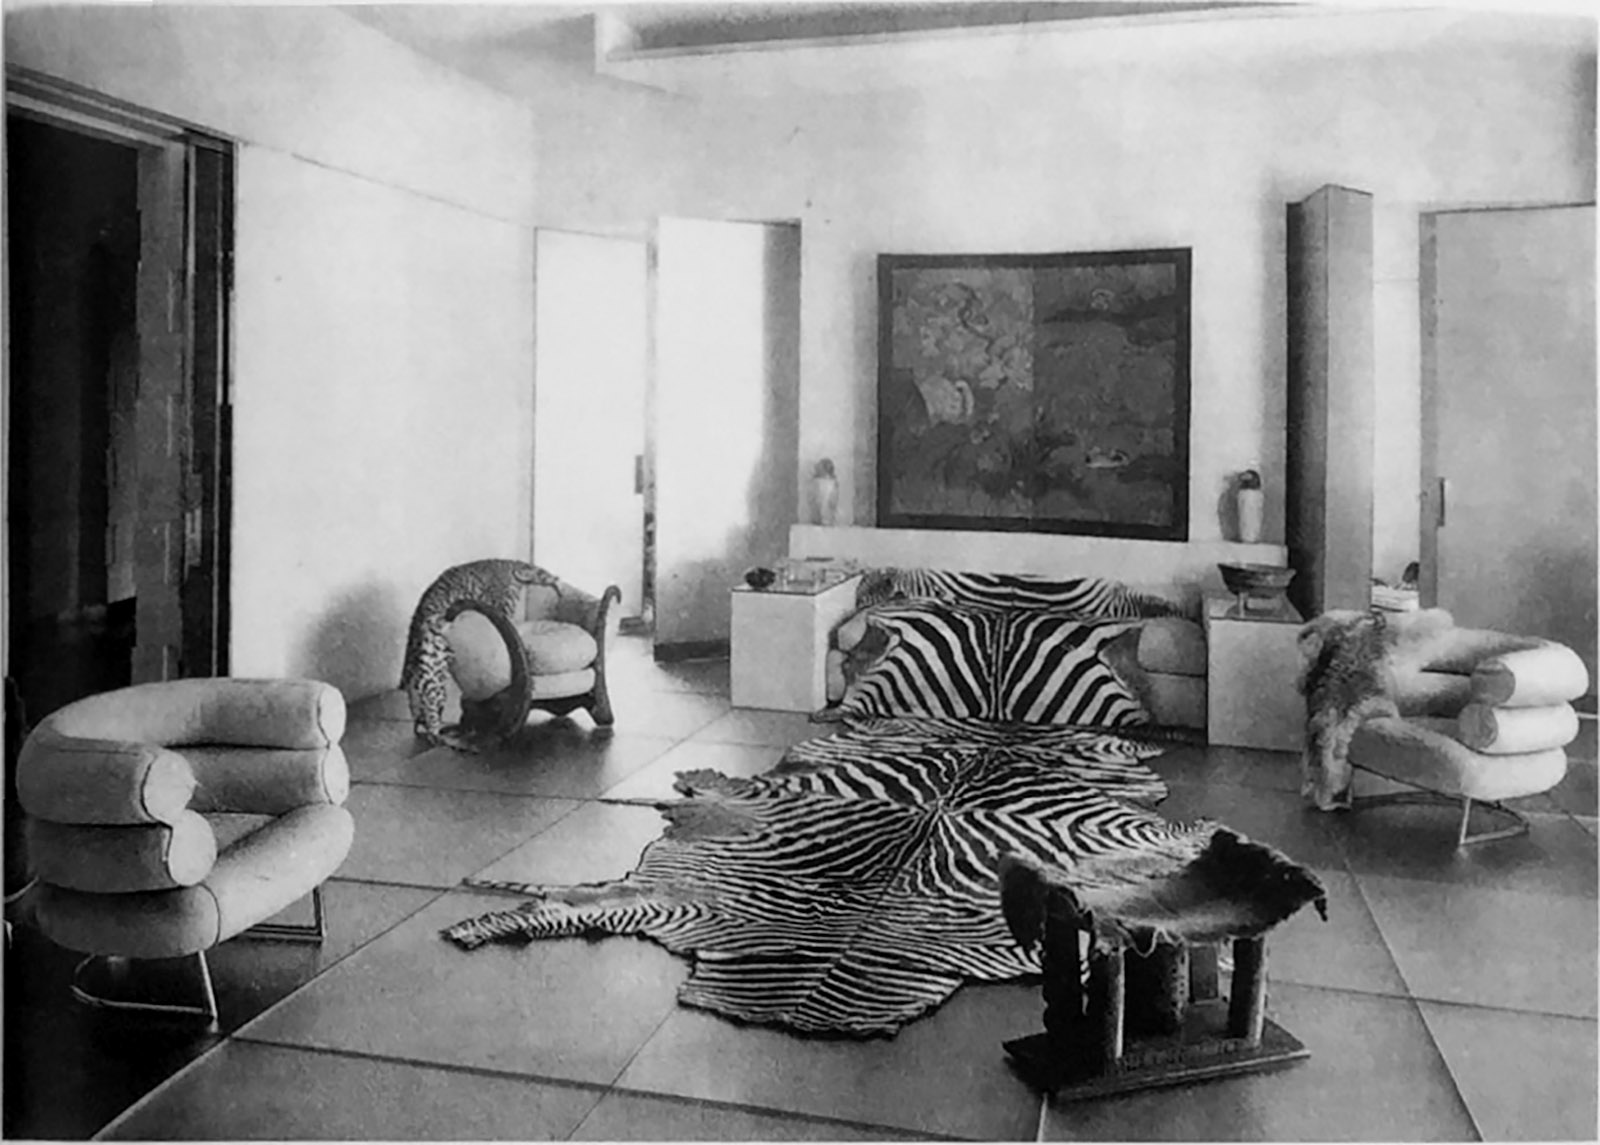 Suzanne Talbot's apartment on the rue de Lota, Paris, with a Lota sofa, Dragon armchair, and two Bibendum chairs, all designed by Eileen Gray, 1933